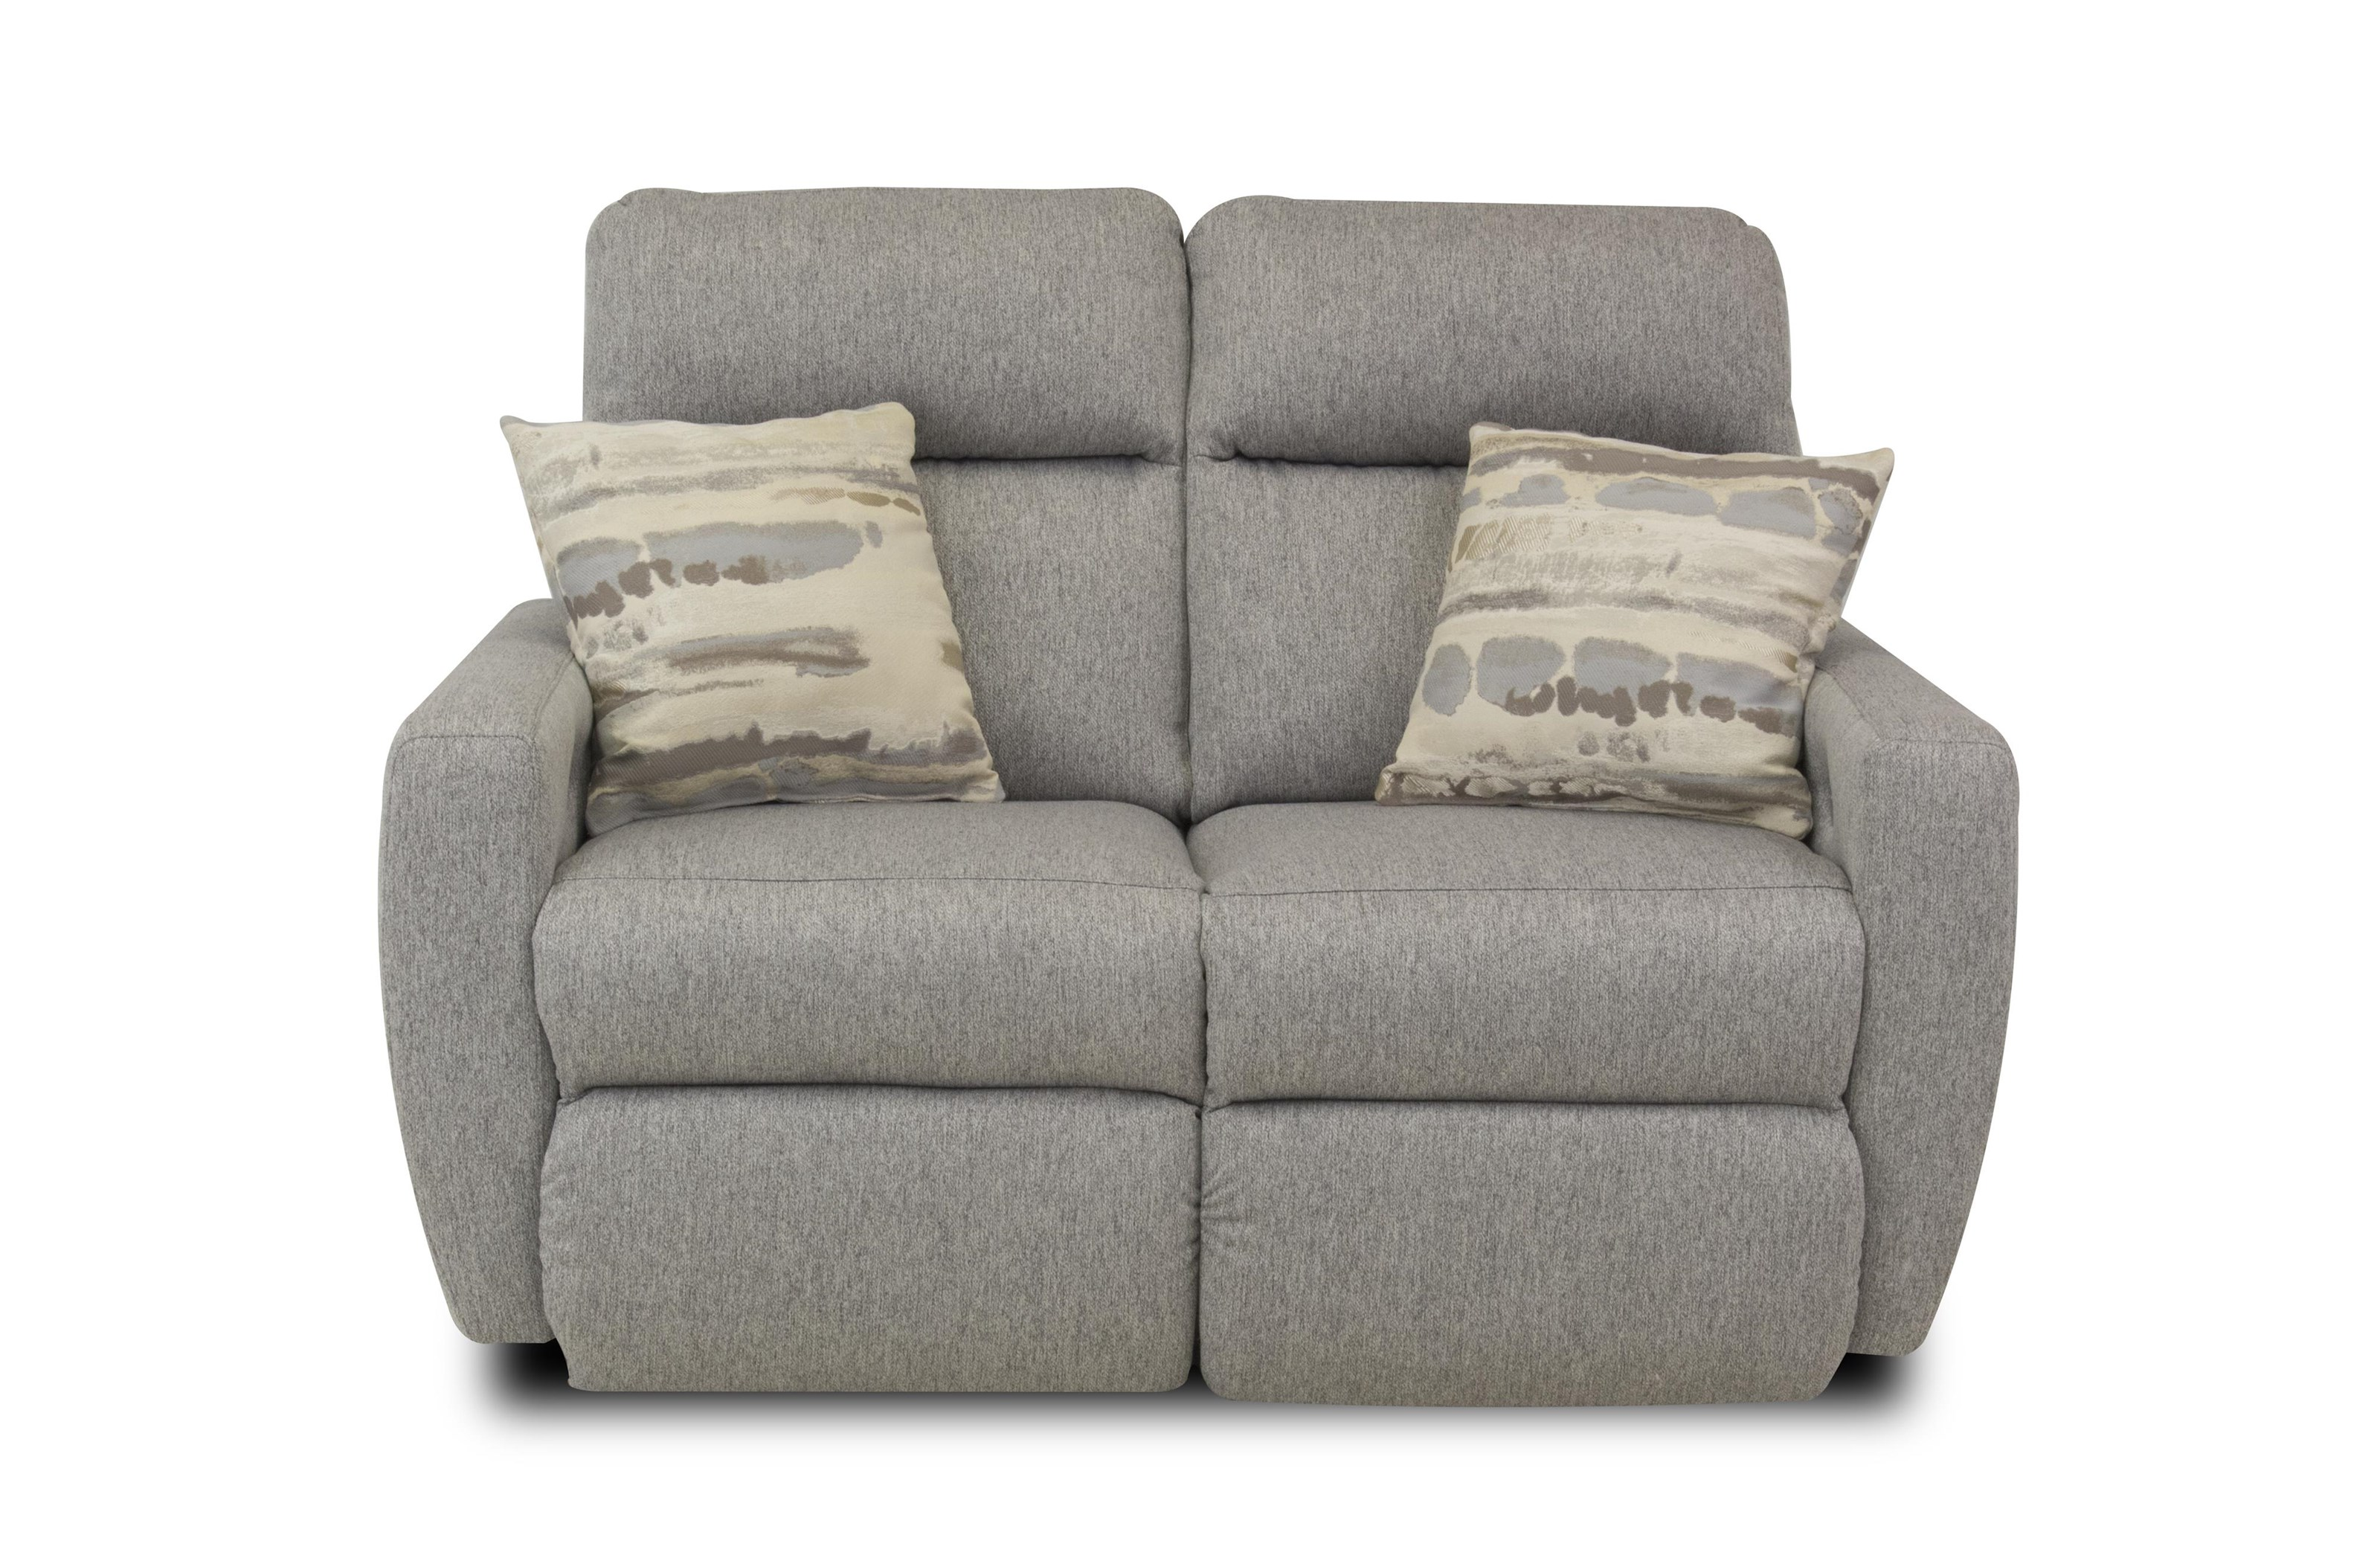 ComfortZone Knock Out Reclining Loveseat w/ Pillows & Pwr Headrest - Item Number: 16865-PPRL